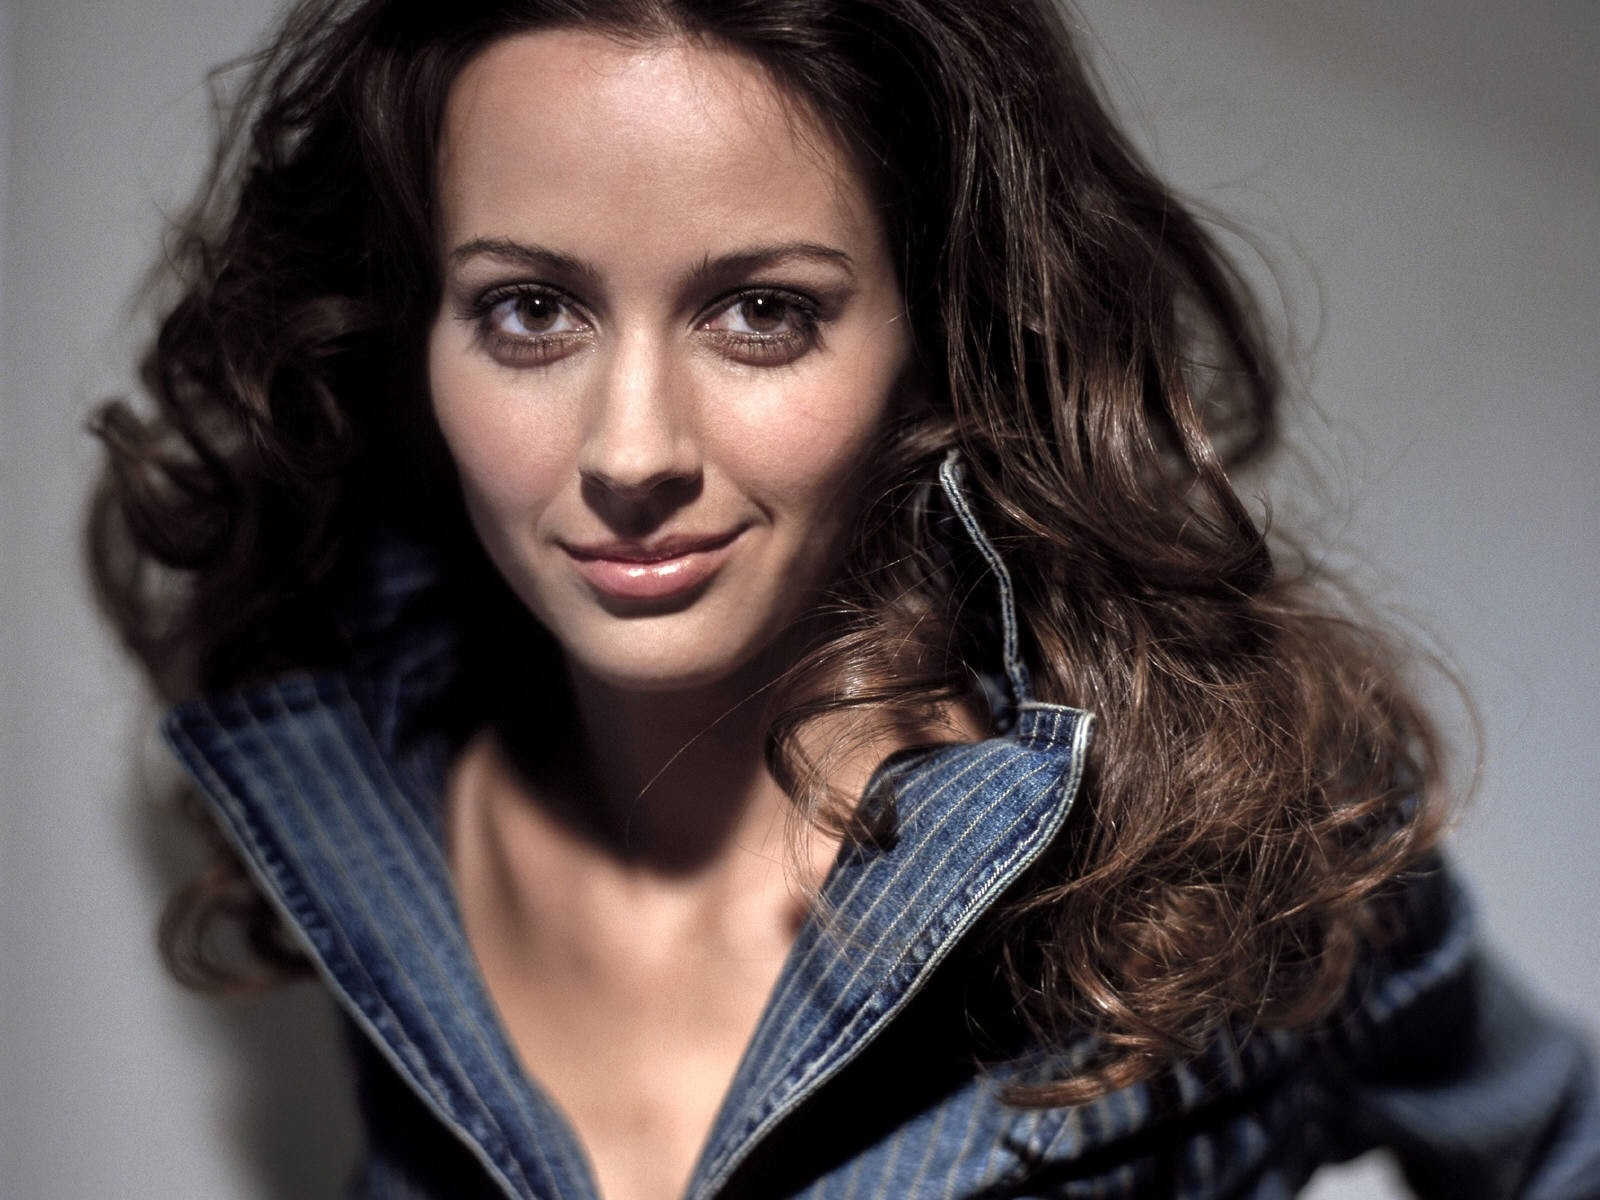 Wallpaper di Amy Acker - 15